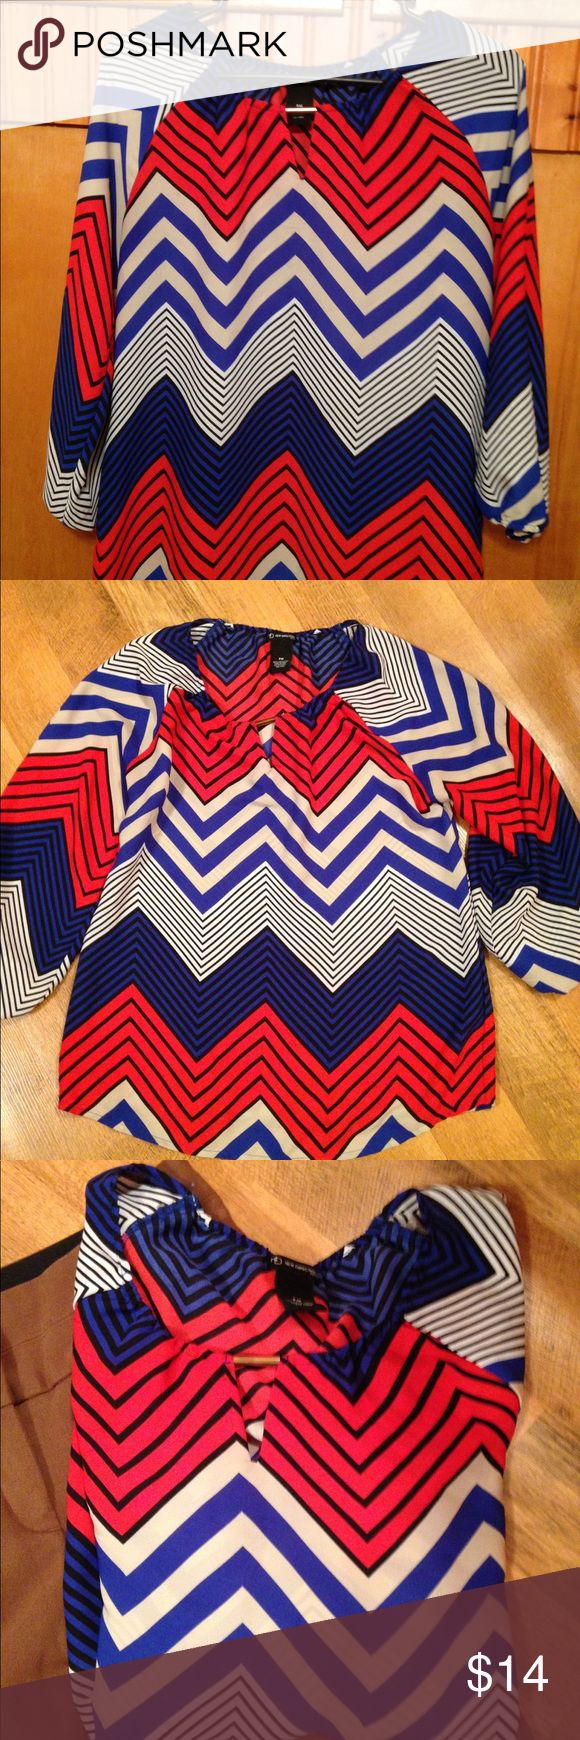 Chevron Top Beautiful Chevron print top by new direction. Light weight, 3/4 length sleeves. Great colors that go with multiple color slacks or skirts. Size is petite medium, true to size. Easy care! PLEASE ask questions before purchasing if you have any!!!! new directions Tops